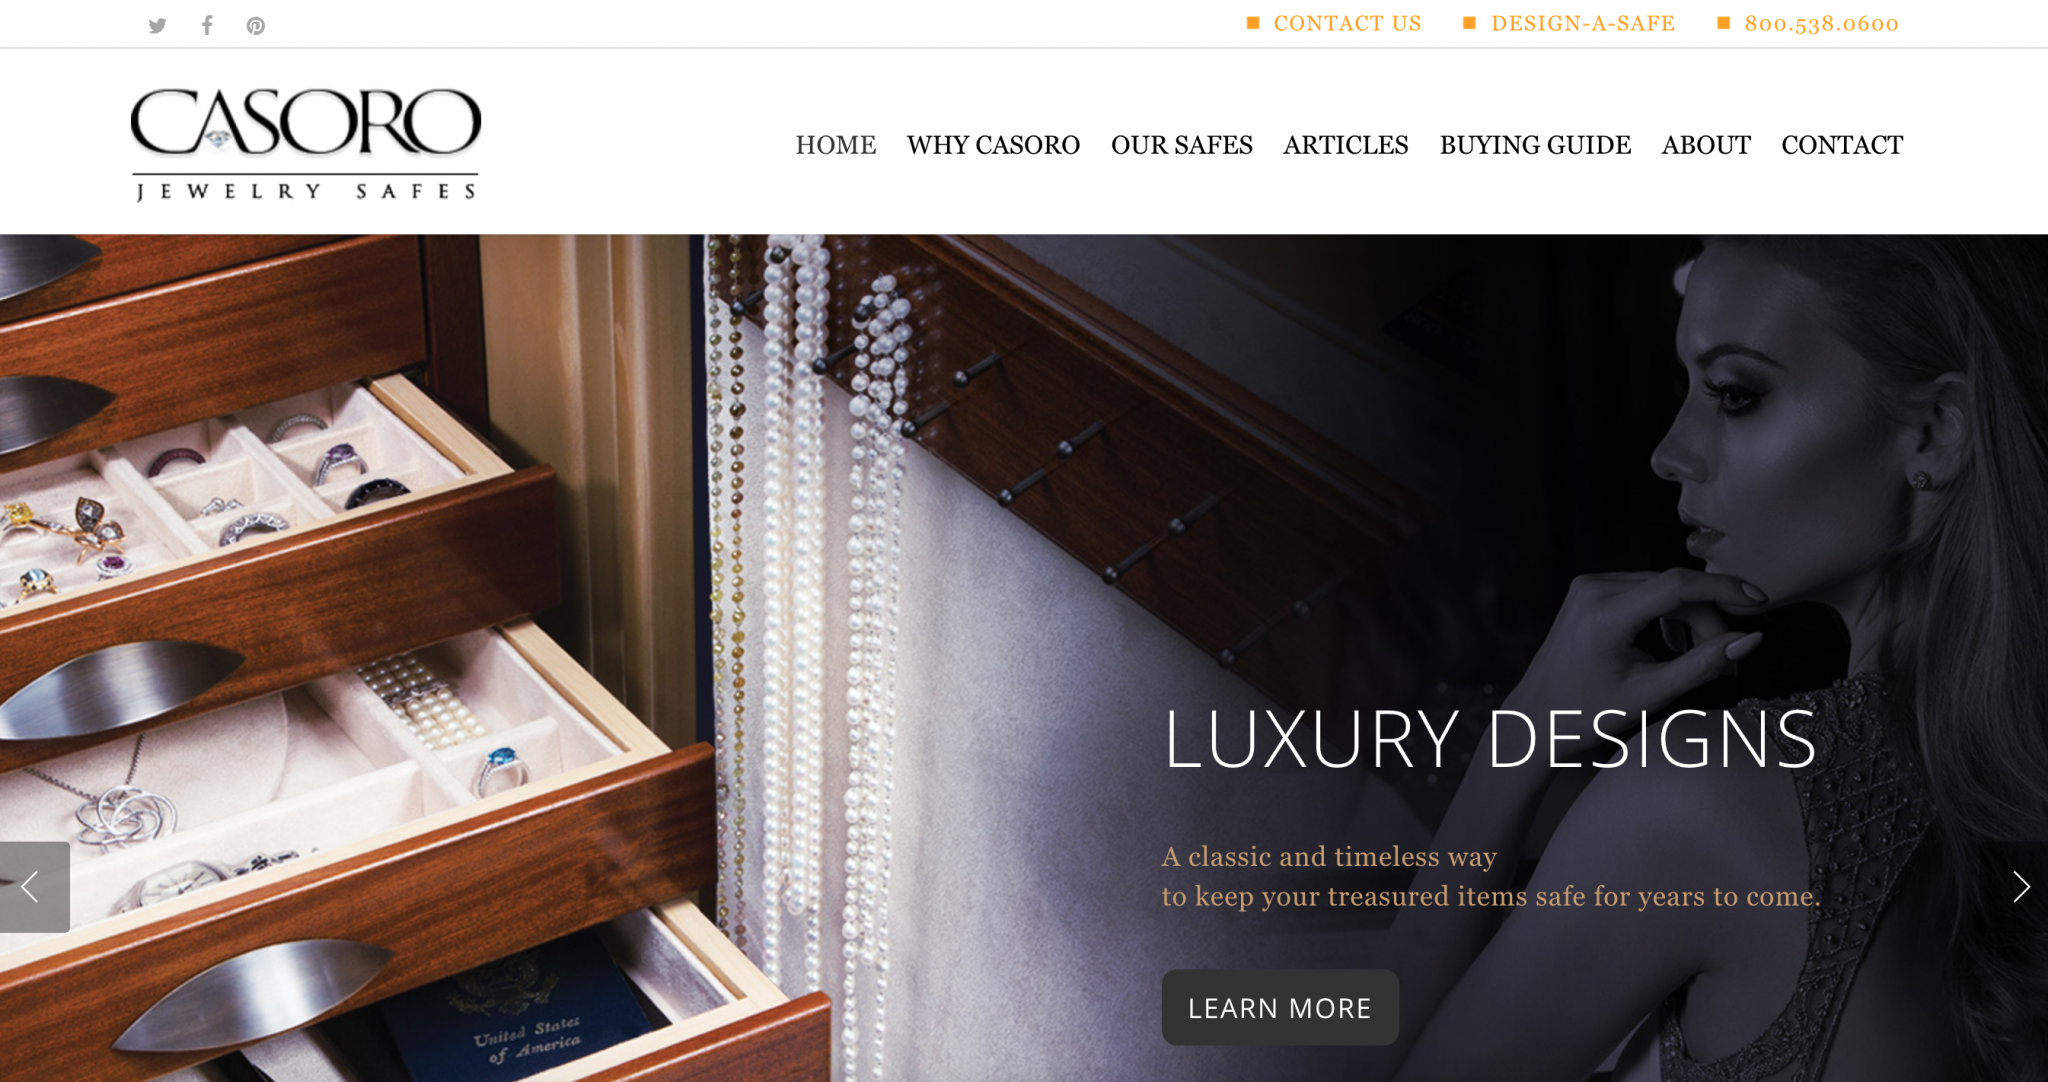 Casoro Jewelry Safes website